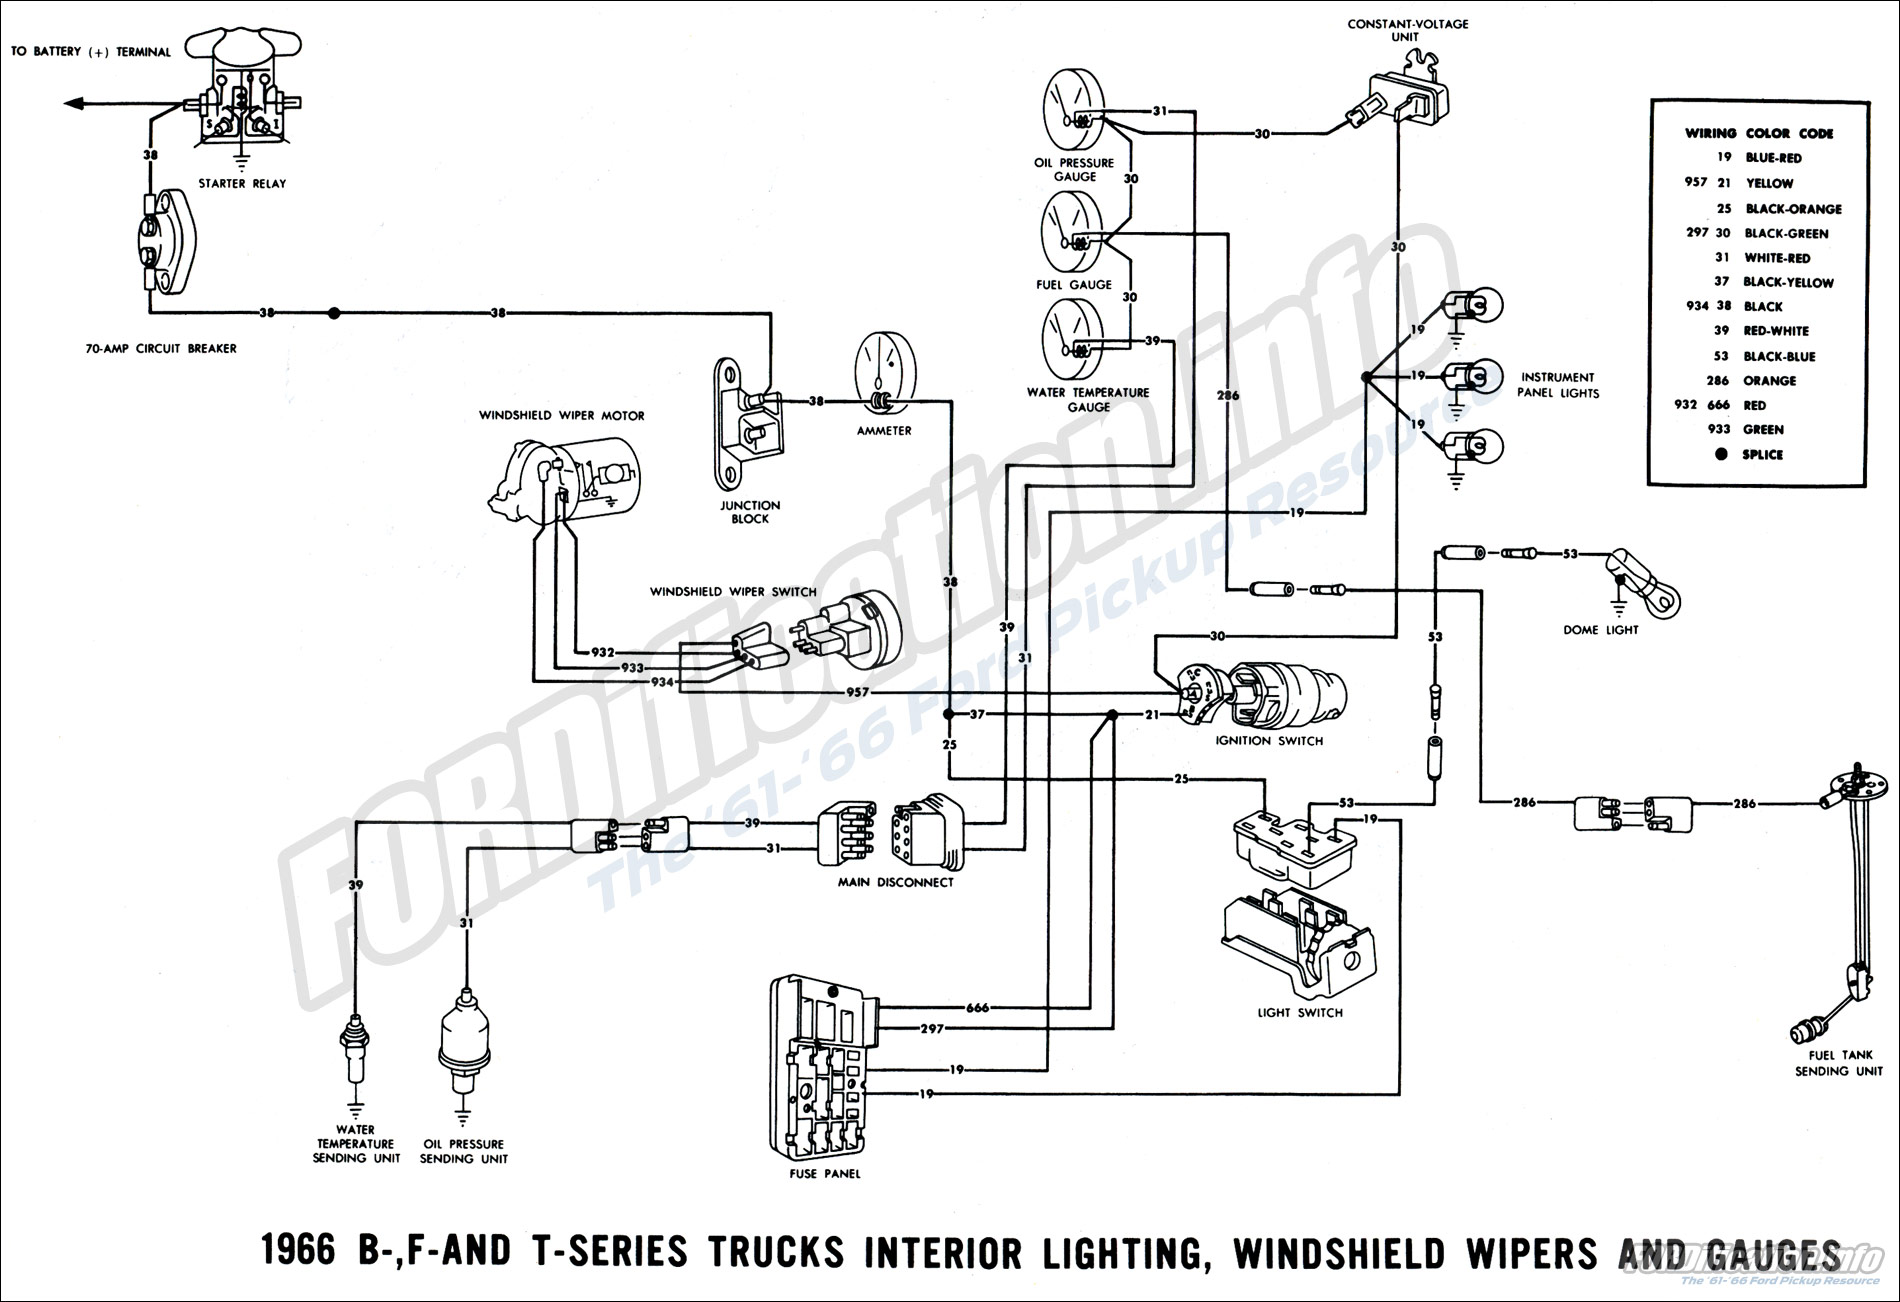 wiring diagram for 1971 ford f100 wiring diagram for 66 ford f100 1966 ford truck wiring diagrams - fordification.info - the ... #8